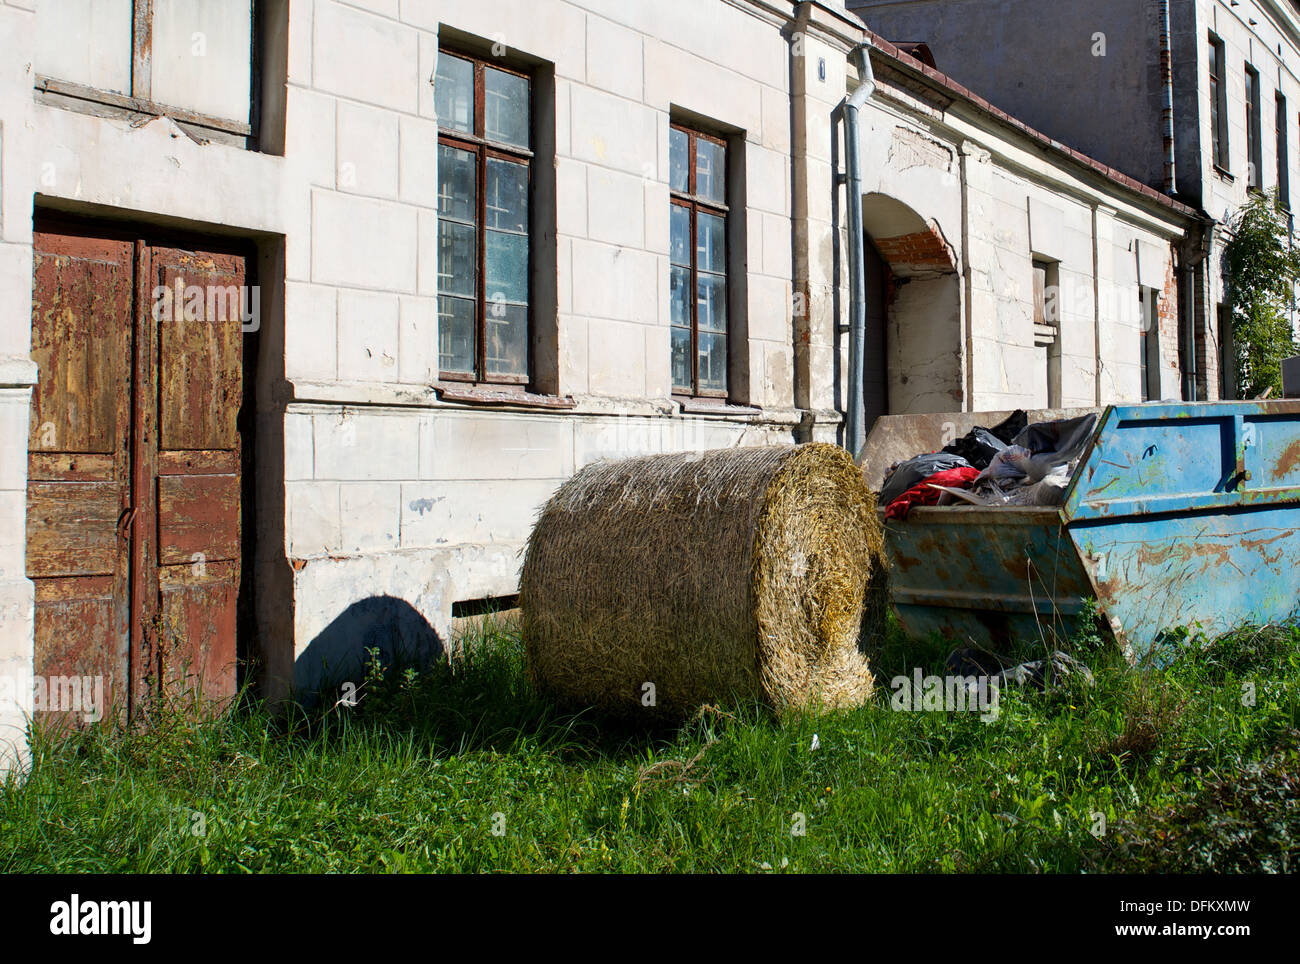 Street view, street in Kaunas, Lithuania - Stock Image